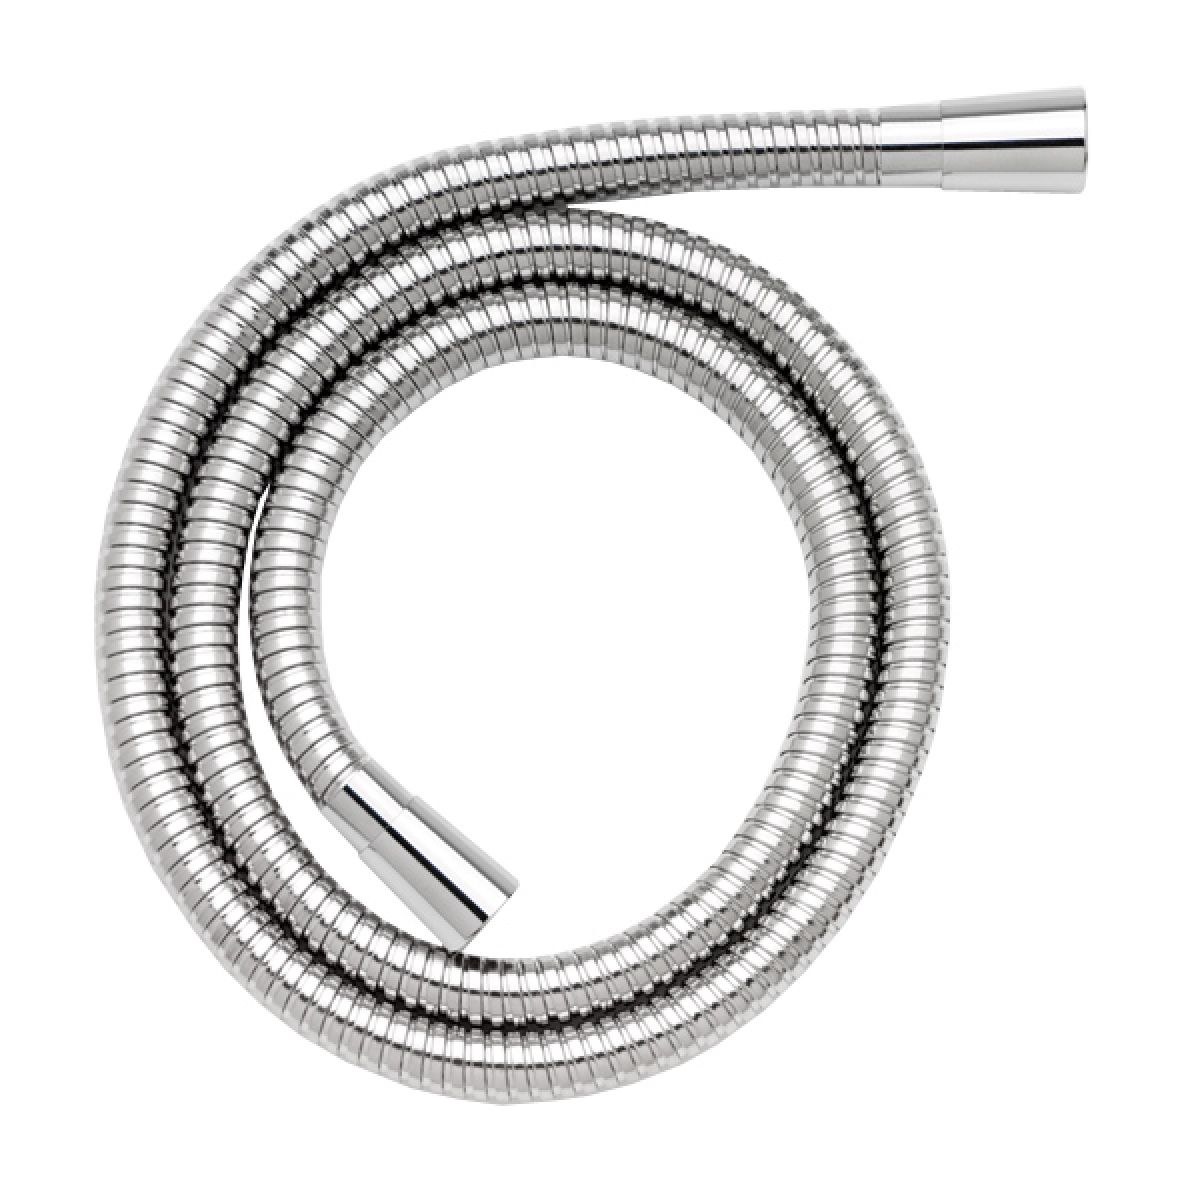 Croydex Stainless Steel Reinforced Shower Hose 1500mm